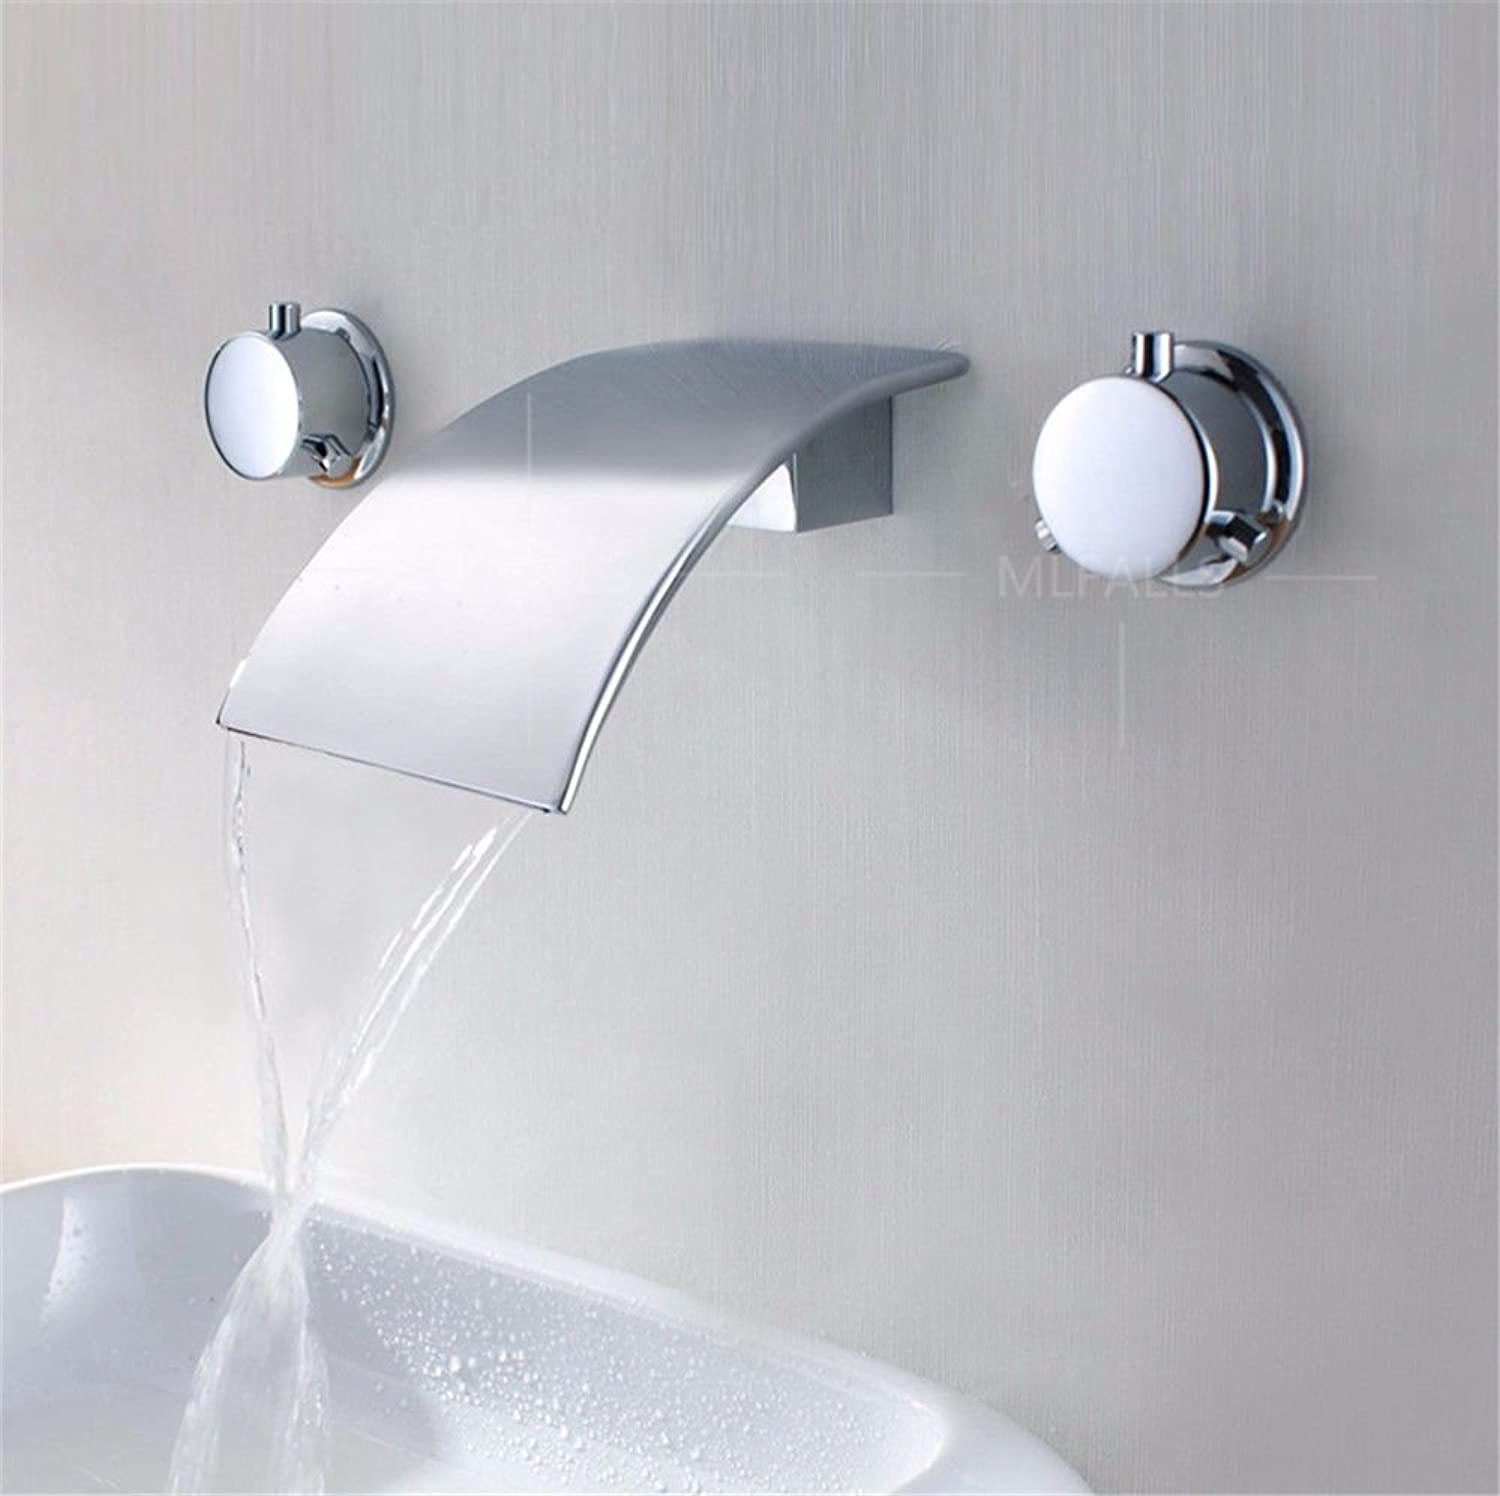 Lpophy Bathroom Sink Mixer Taps Faucet Bath Waterfall Cold and Hot Water Tap for Washroom Bathroom and Kitchen Into The Wall Concealed Big Waterfall Hot and Cold Round